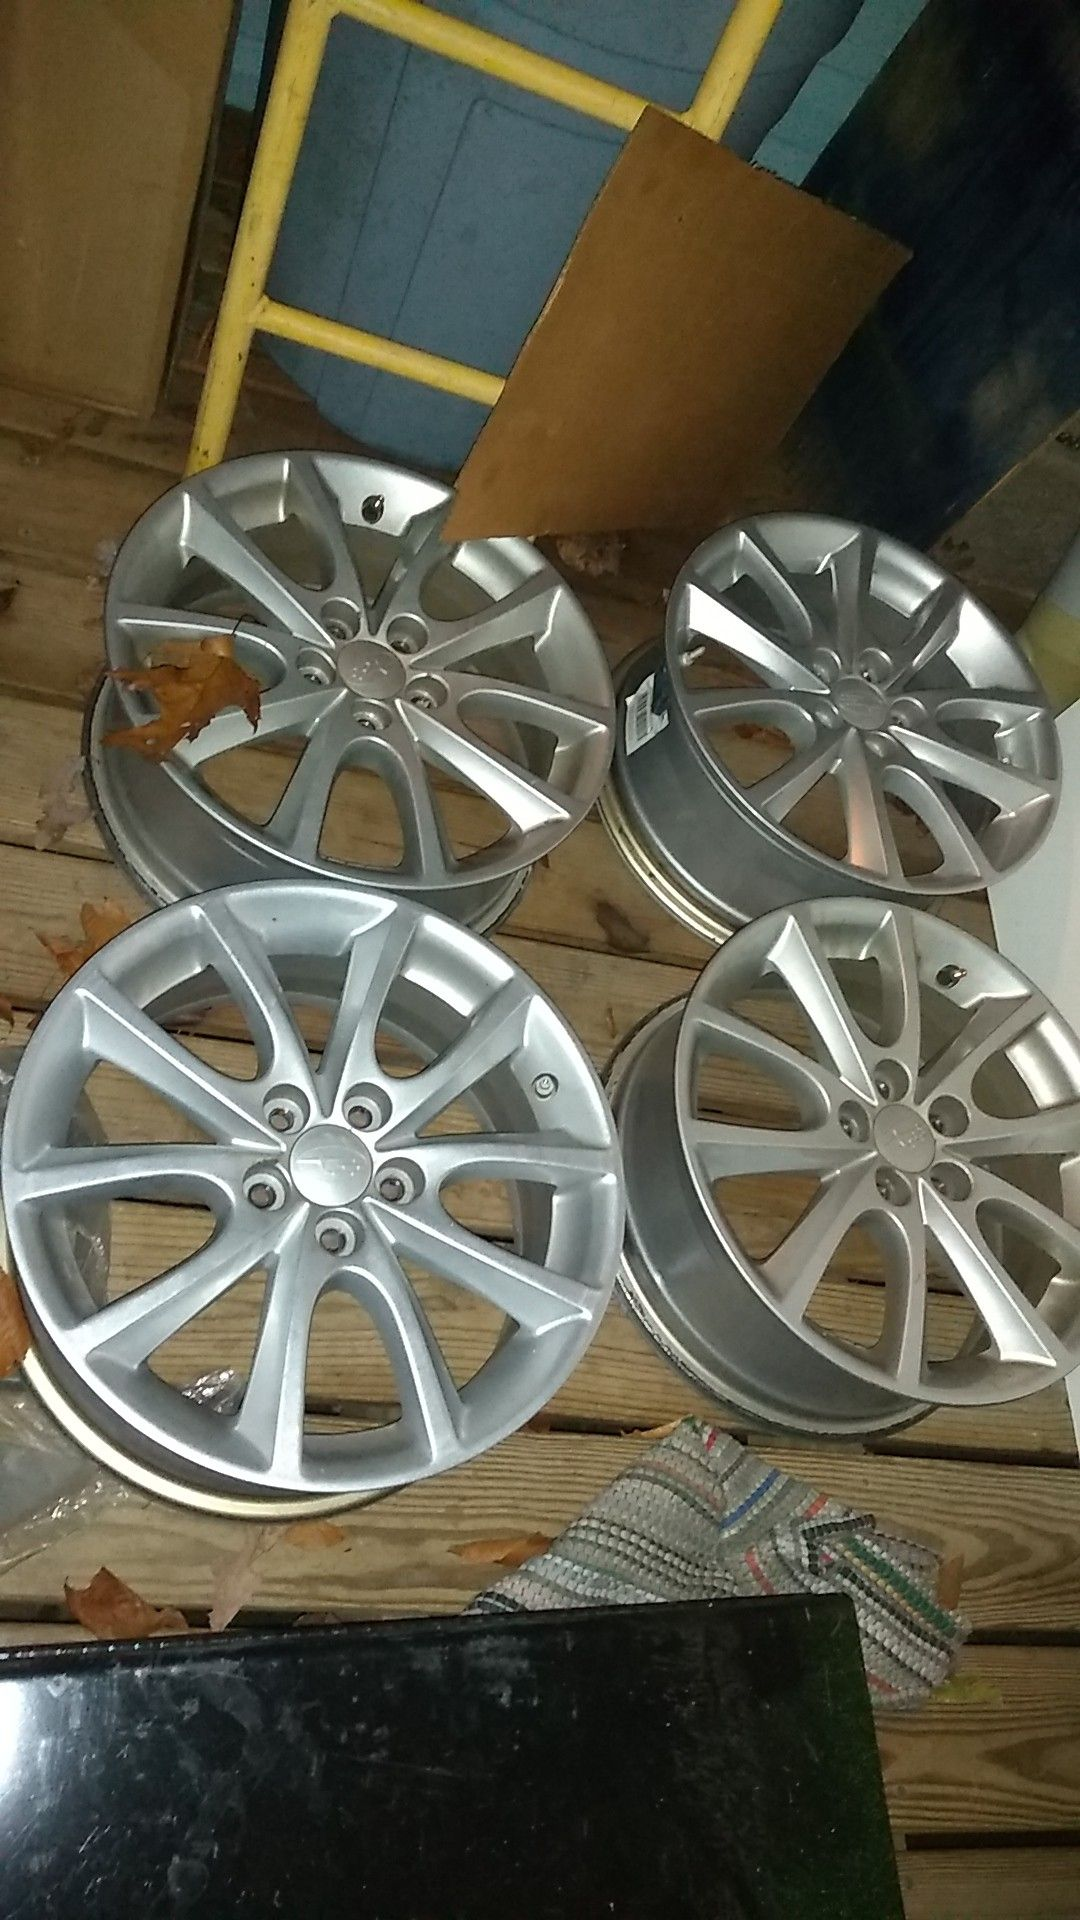 Subaru aluminum wheels fits 2014 legacy we had them on a2019 imprezza two rims were new two are used all are real nice . 300.00 for the set